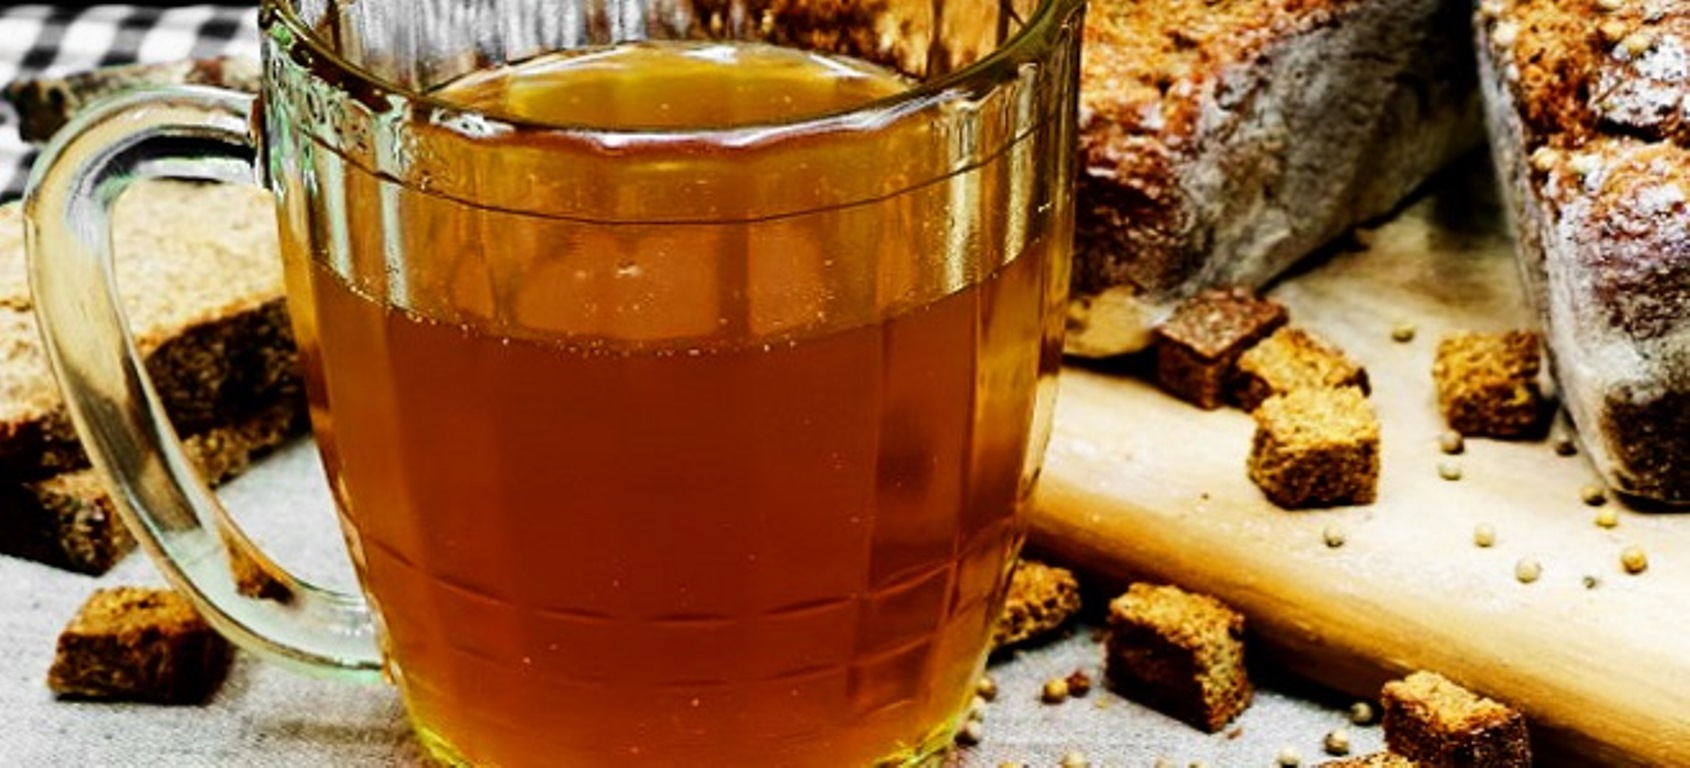 The benefit of kvass ... or is it harm